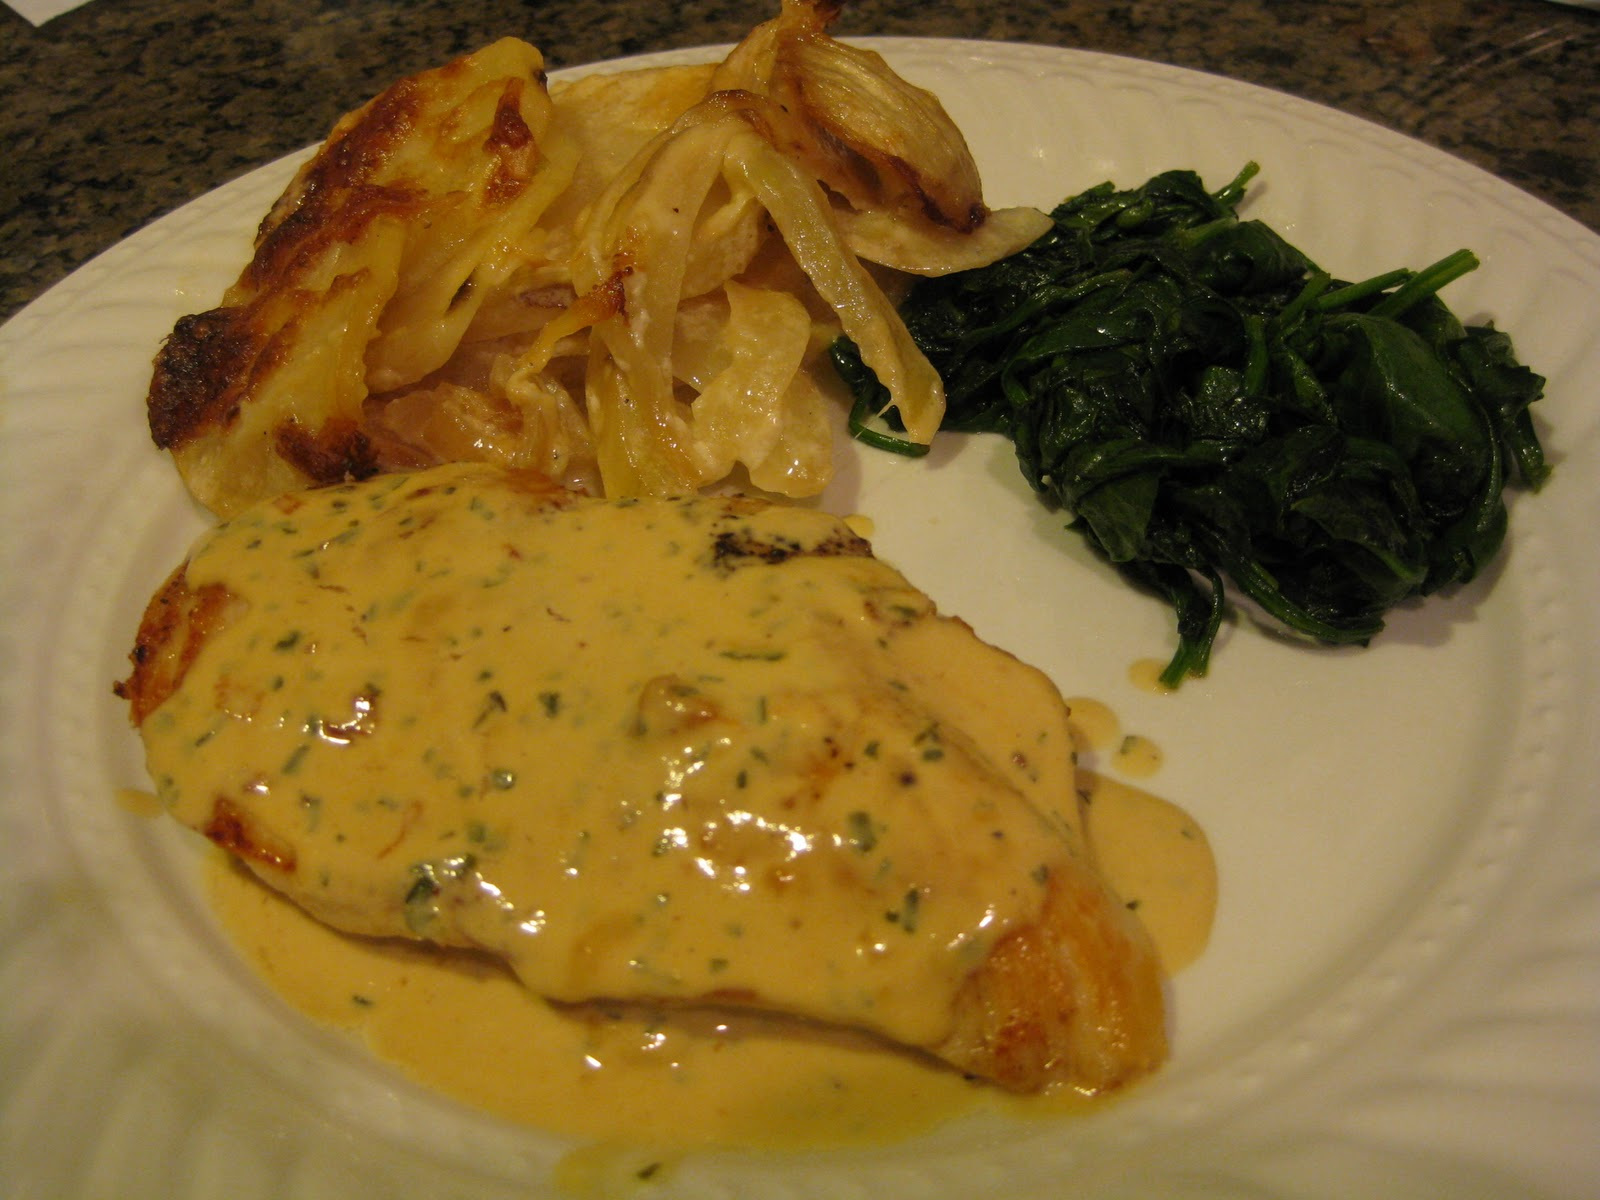 ... Step-by-Step Recipe: Sauteed Chicken Breasts with Creamy Mustard Sauce